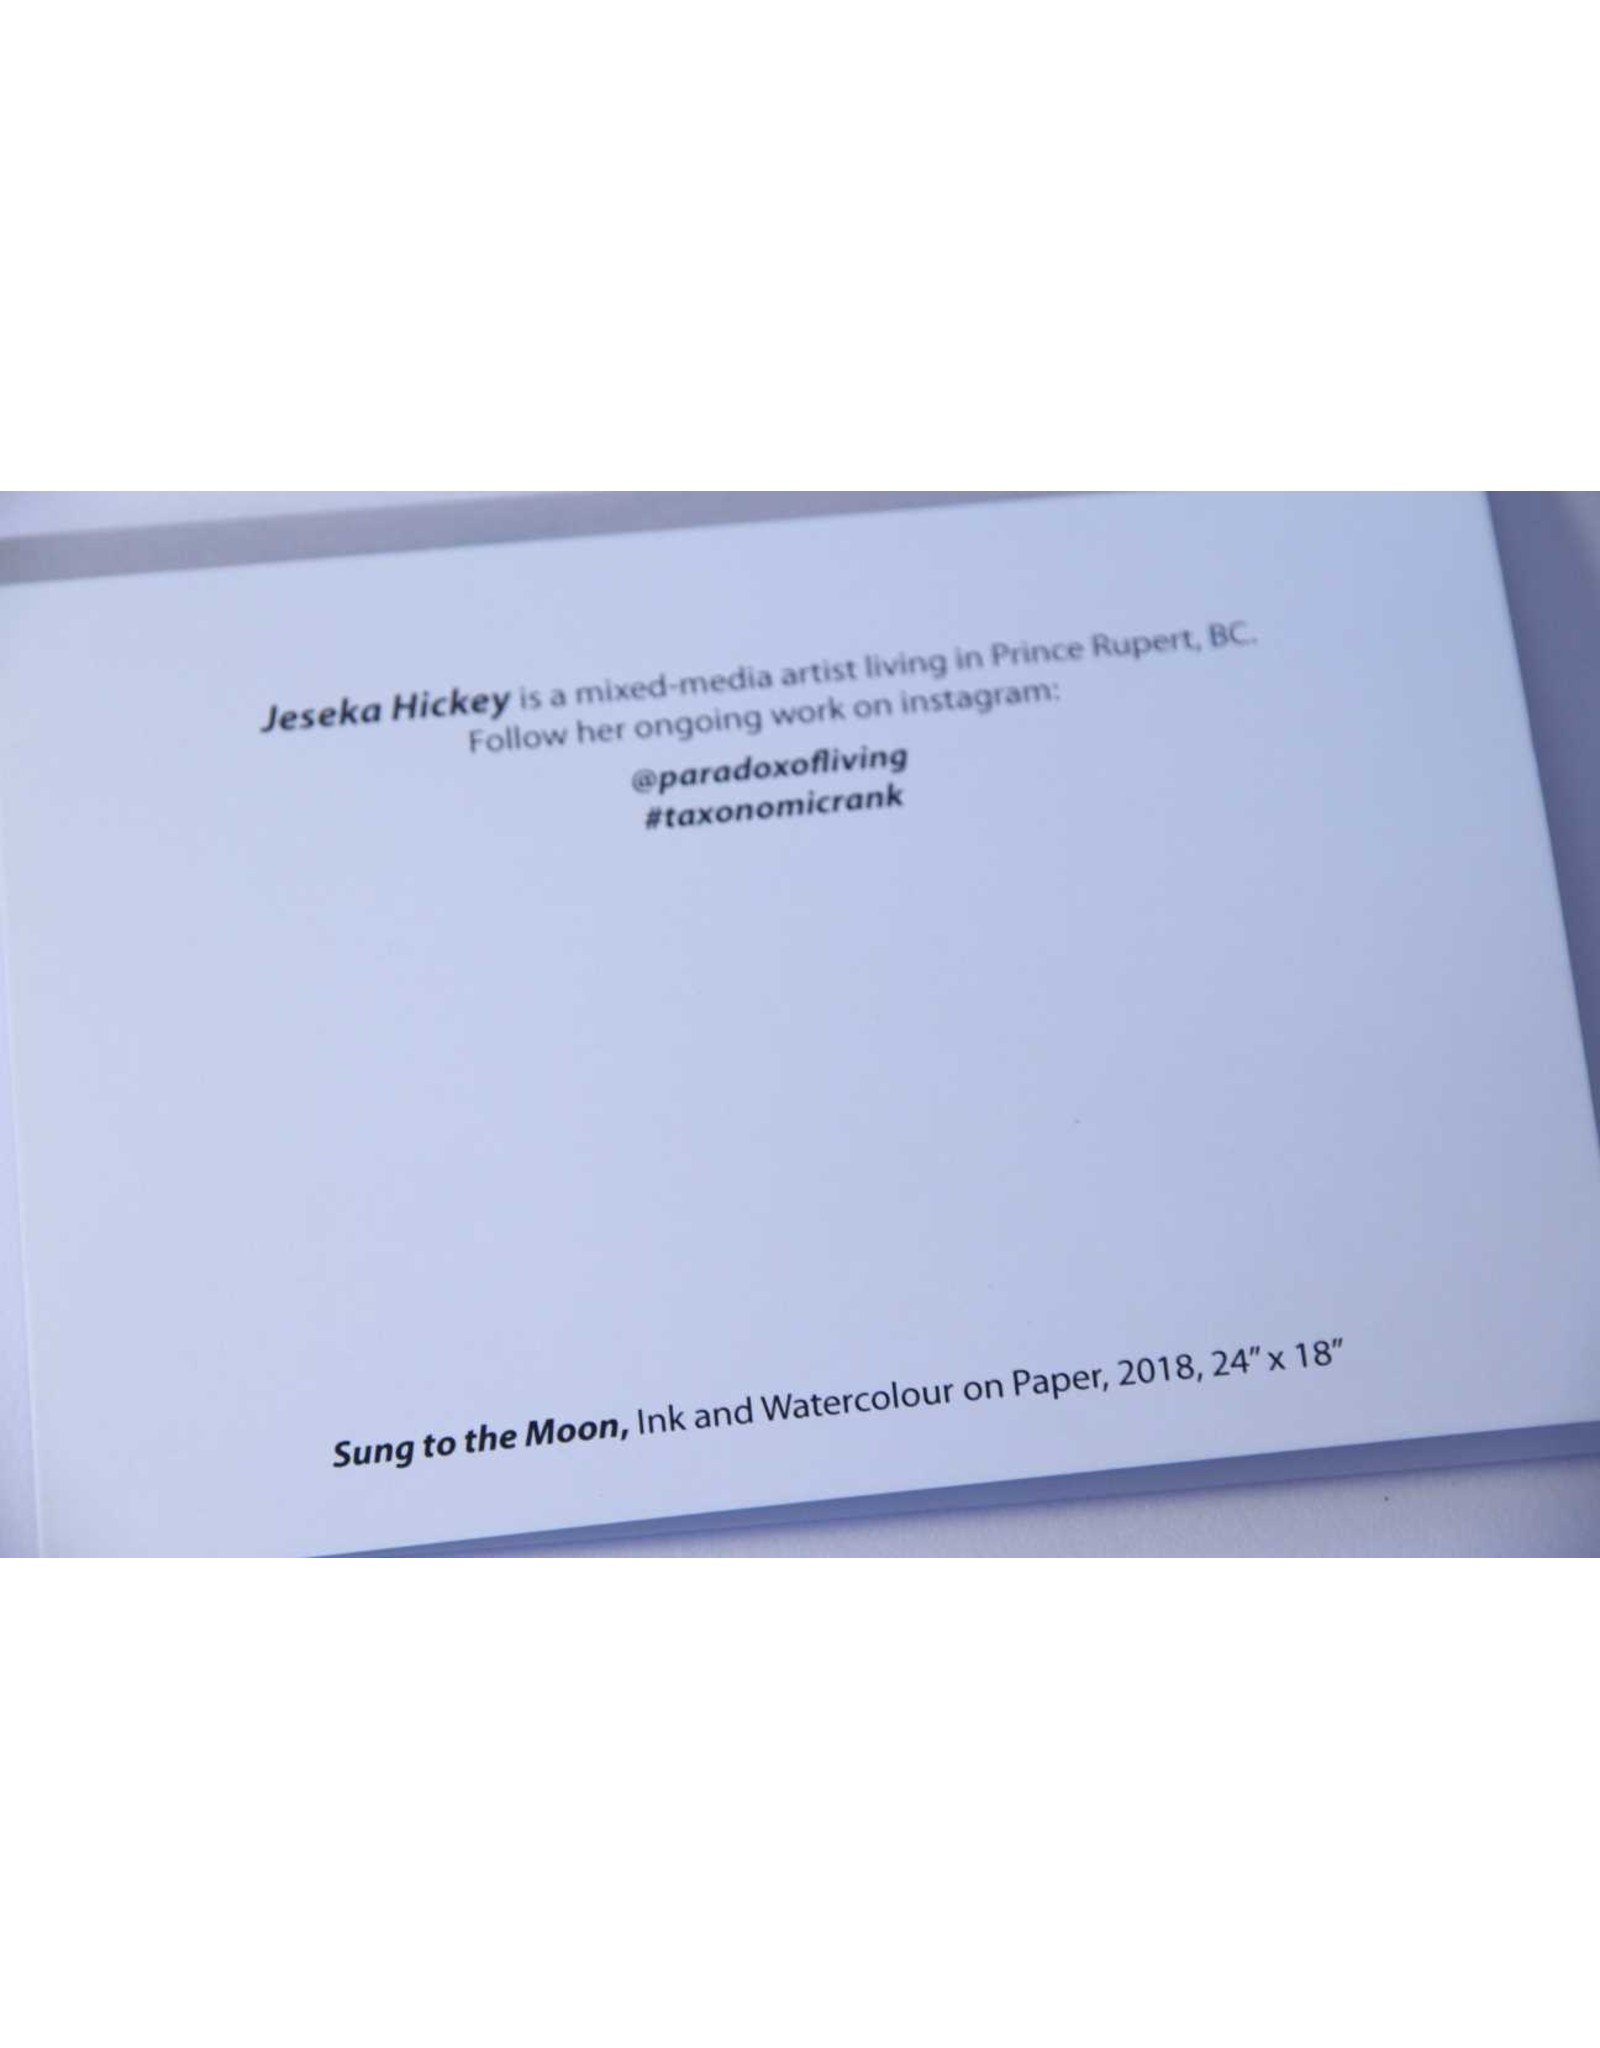 Jeseka Hickey Card - Sung to the Moon